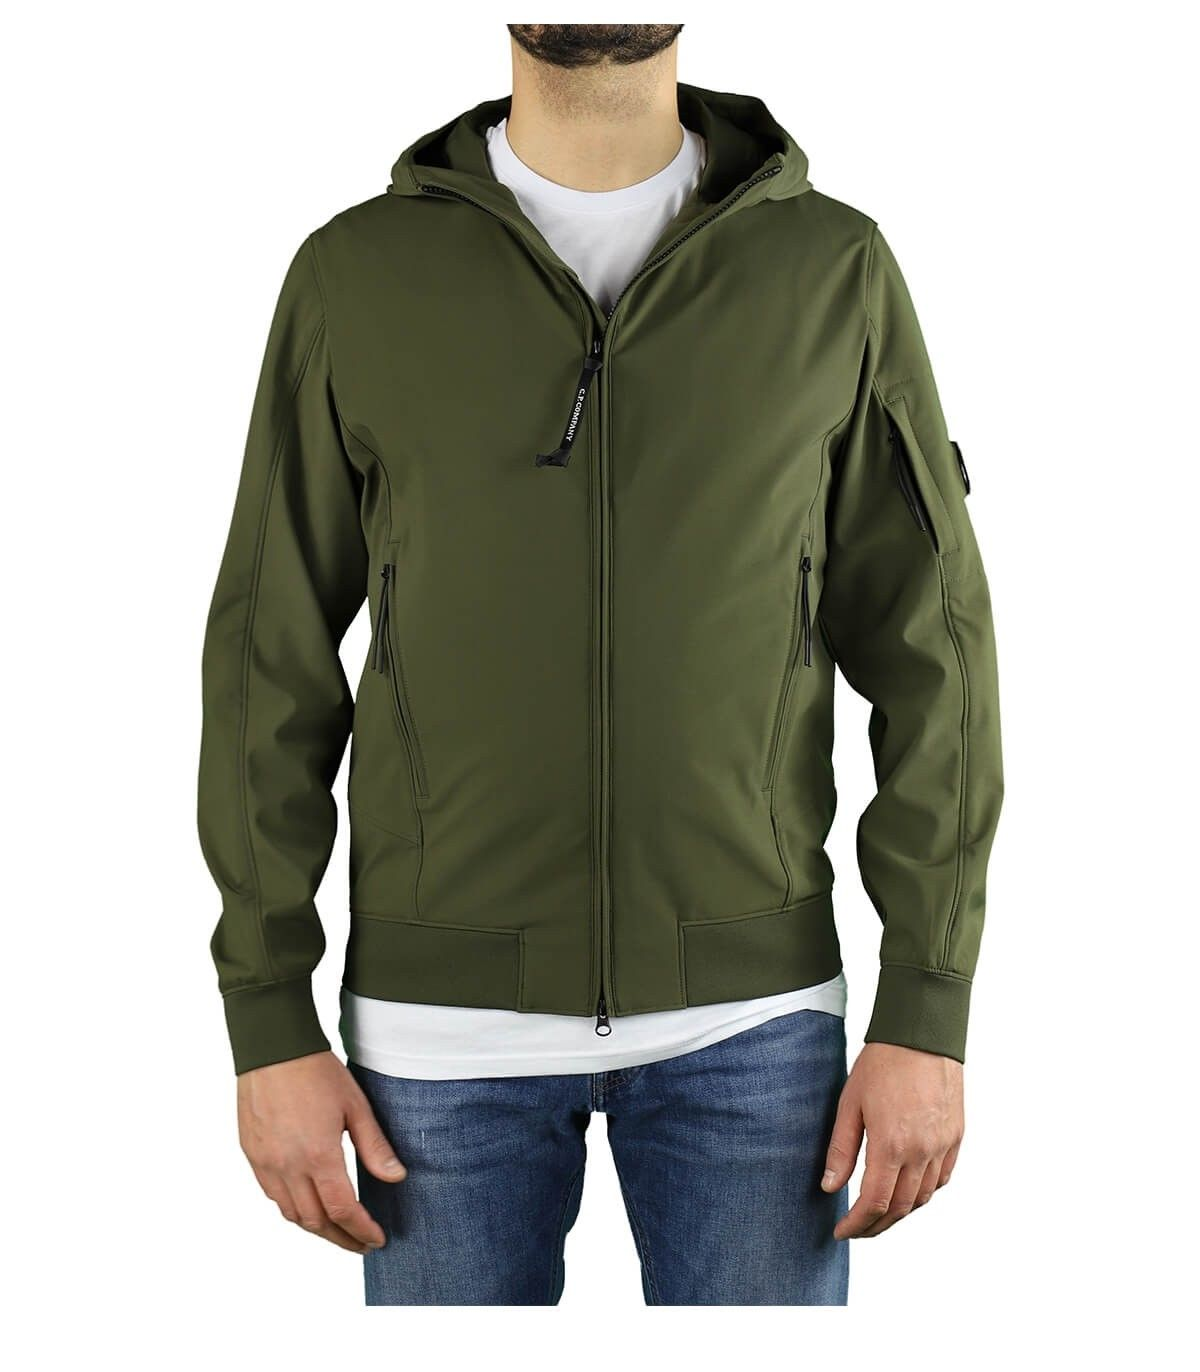 C.p. Company Jackets CP COMPANY MEN'S 10CMOW014A005968A683 GREEN POLYAMIDE OUTERWEAR JACKET